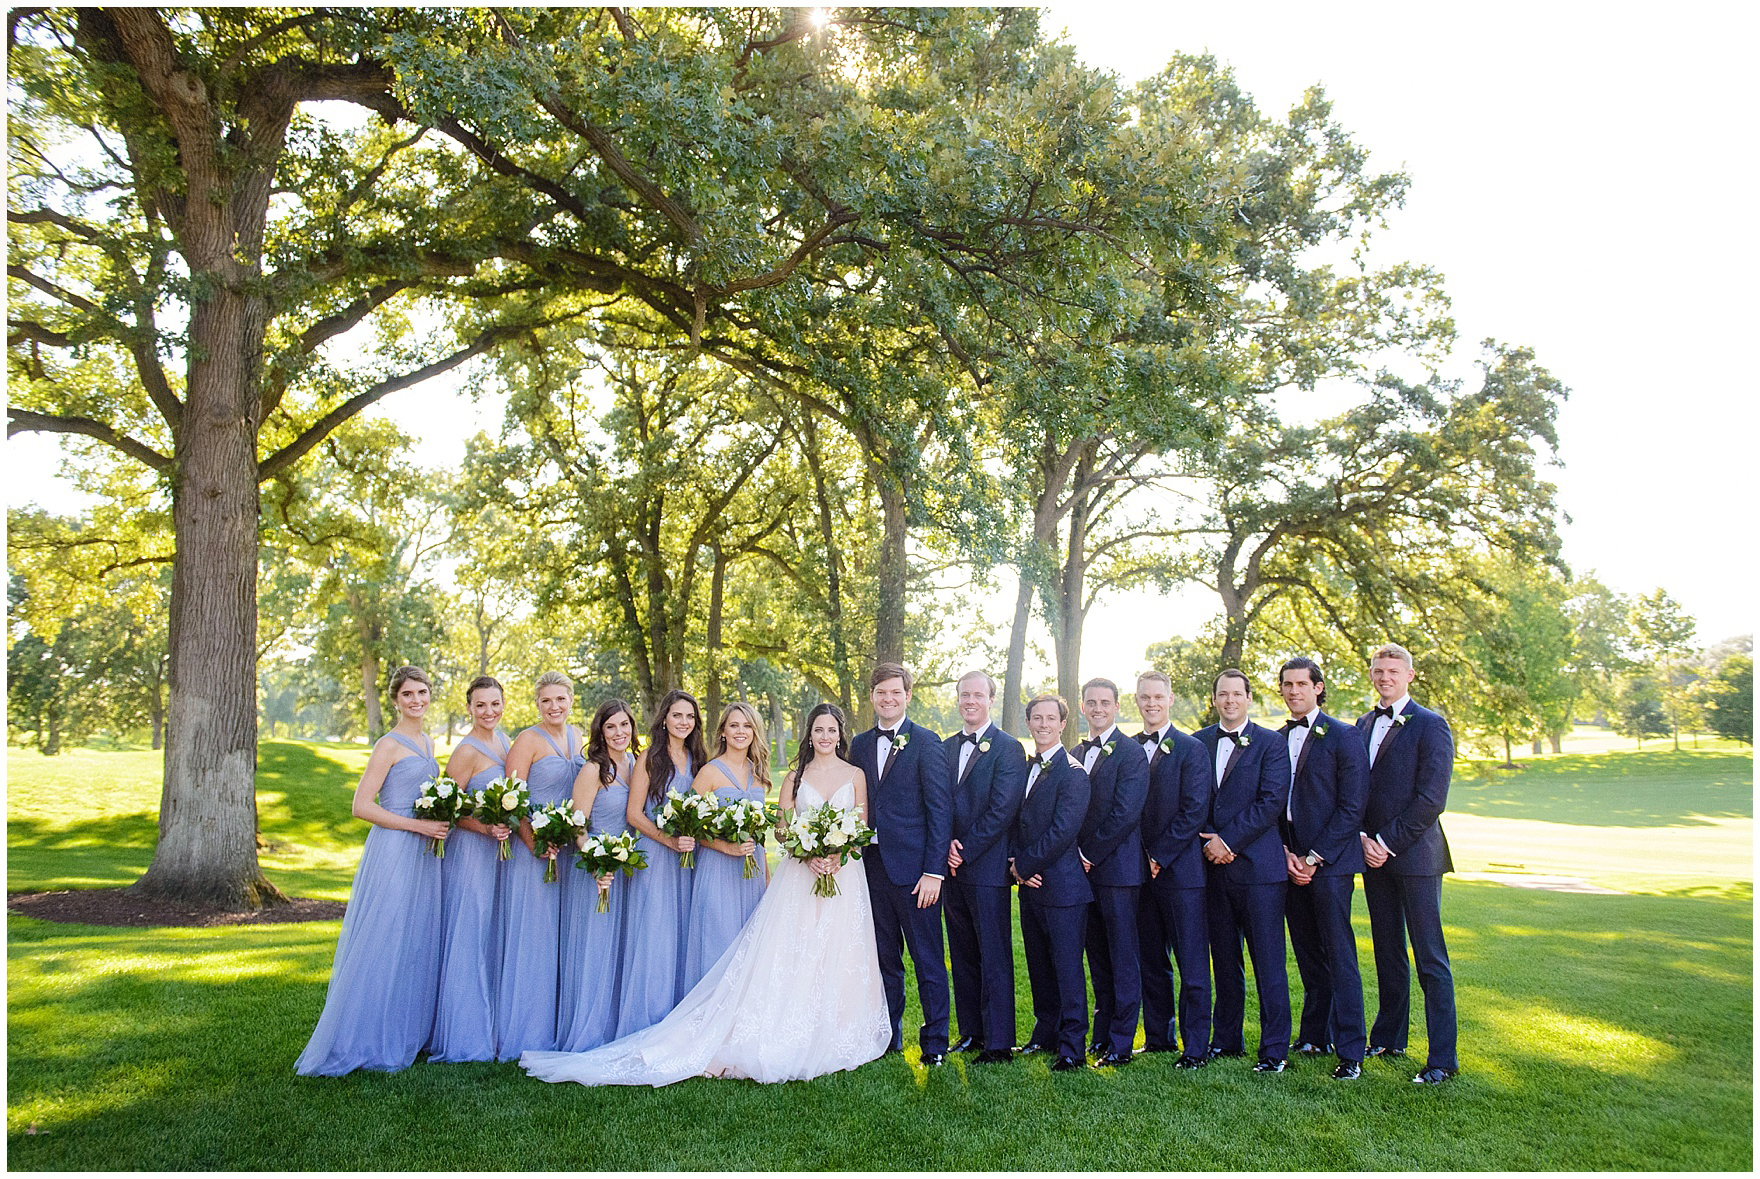 The bridal party poses on a gorgeous summer evening during a Butterfield Country Club wedding.